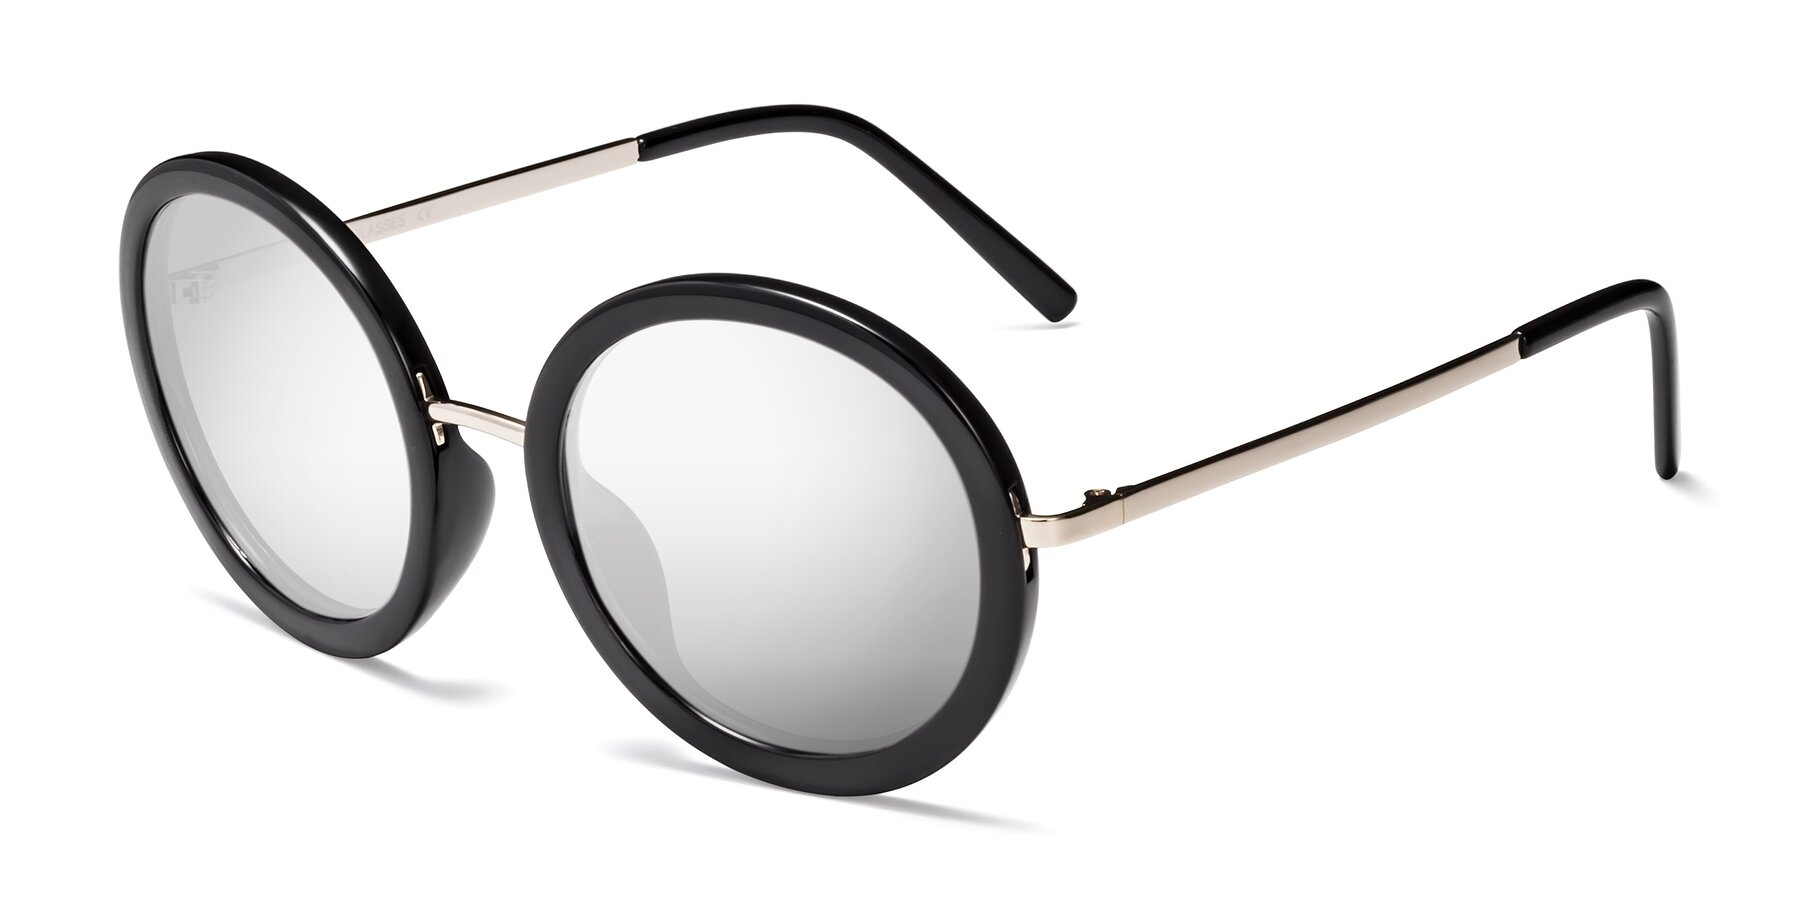 Angle of Bloom in Black with Silver Mirrored Lenses